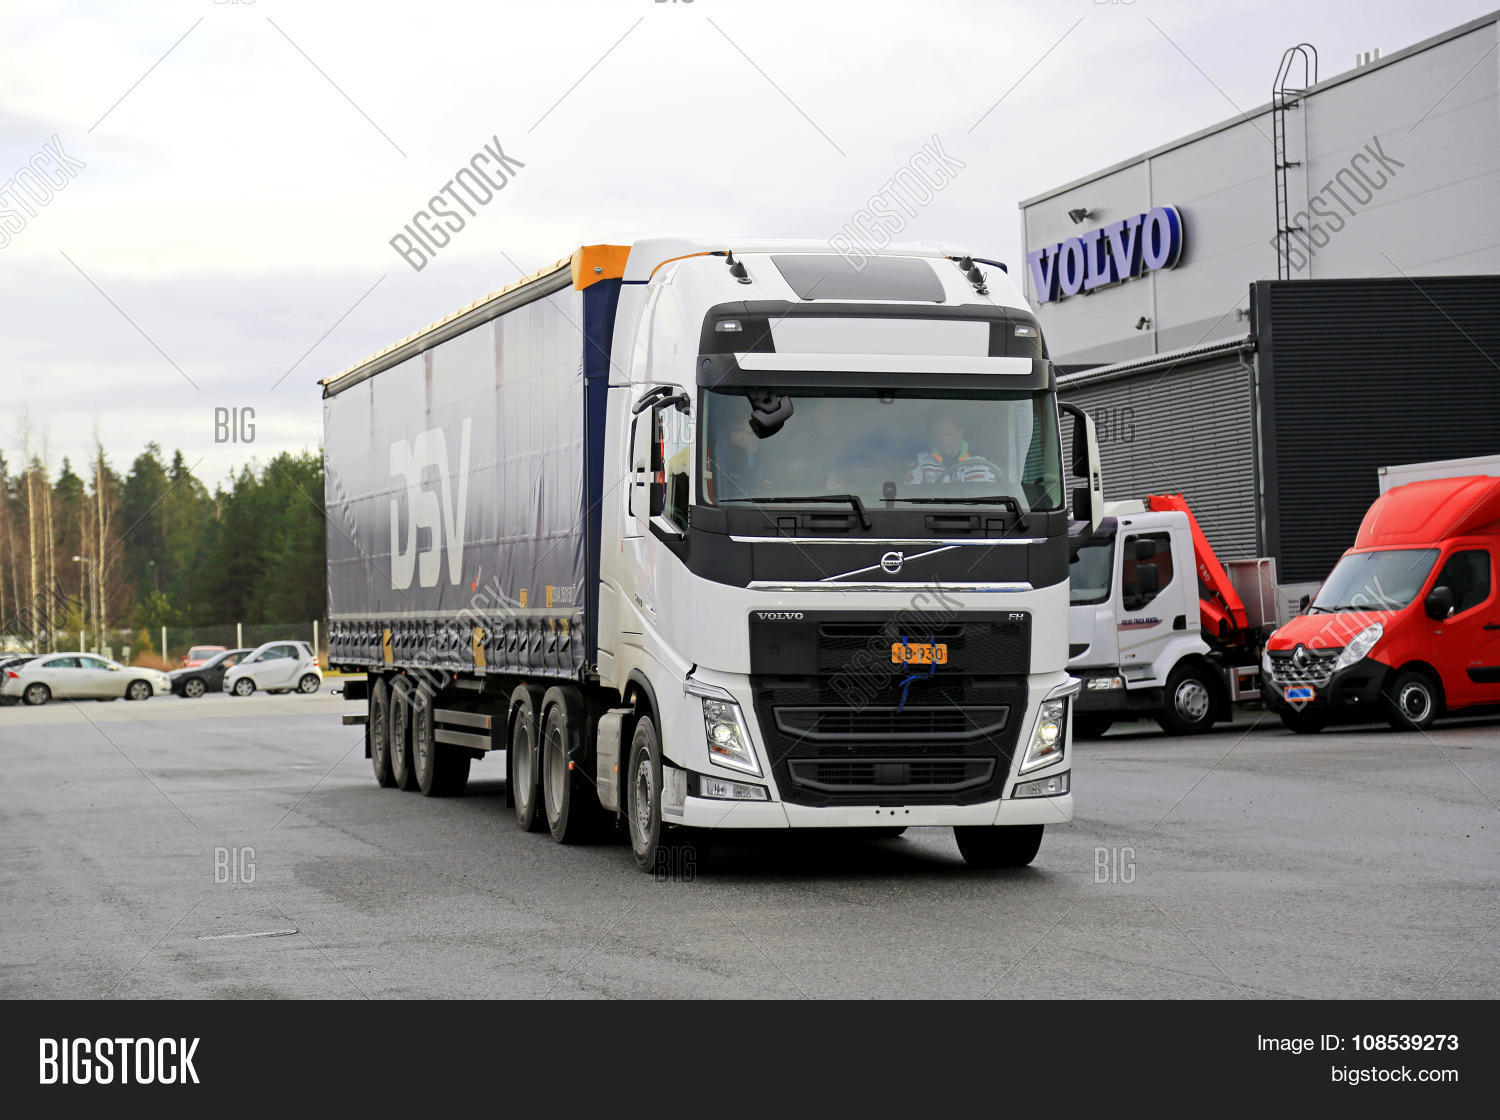 Lieto Finland November 14 2017 Unidentified Drivers Sets Out To Test Drive Volvo Fh 500 Semi At The Truck Center Turku Demo And Tire